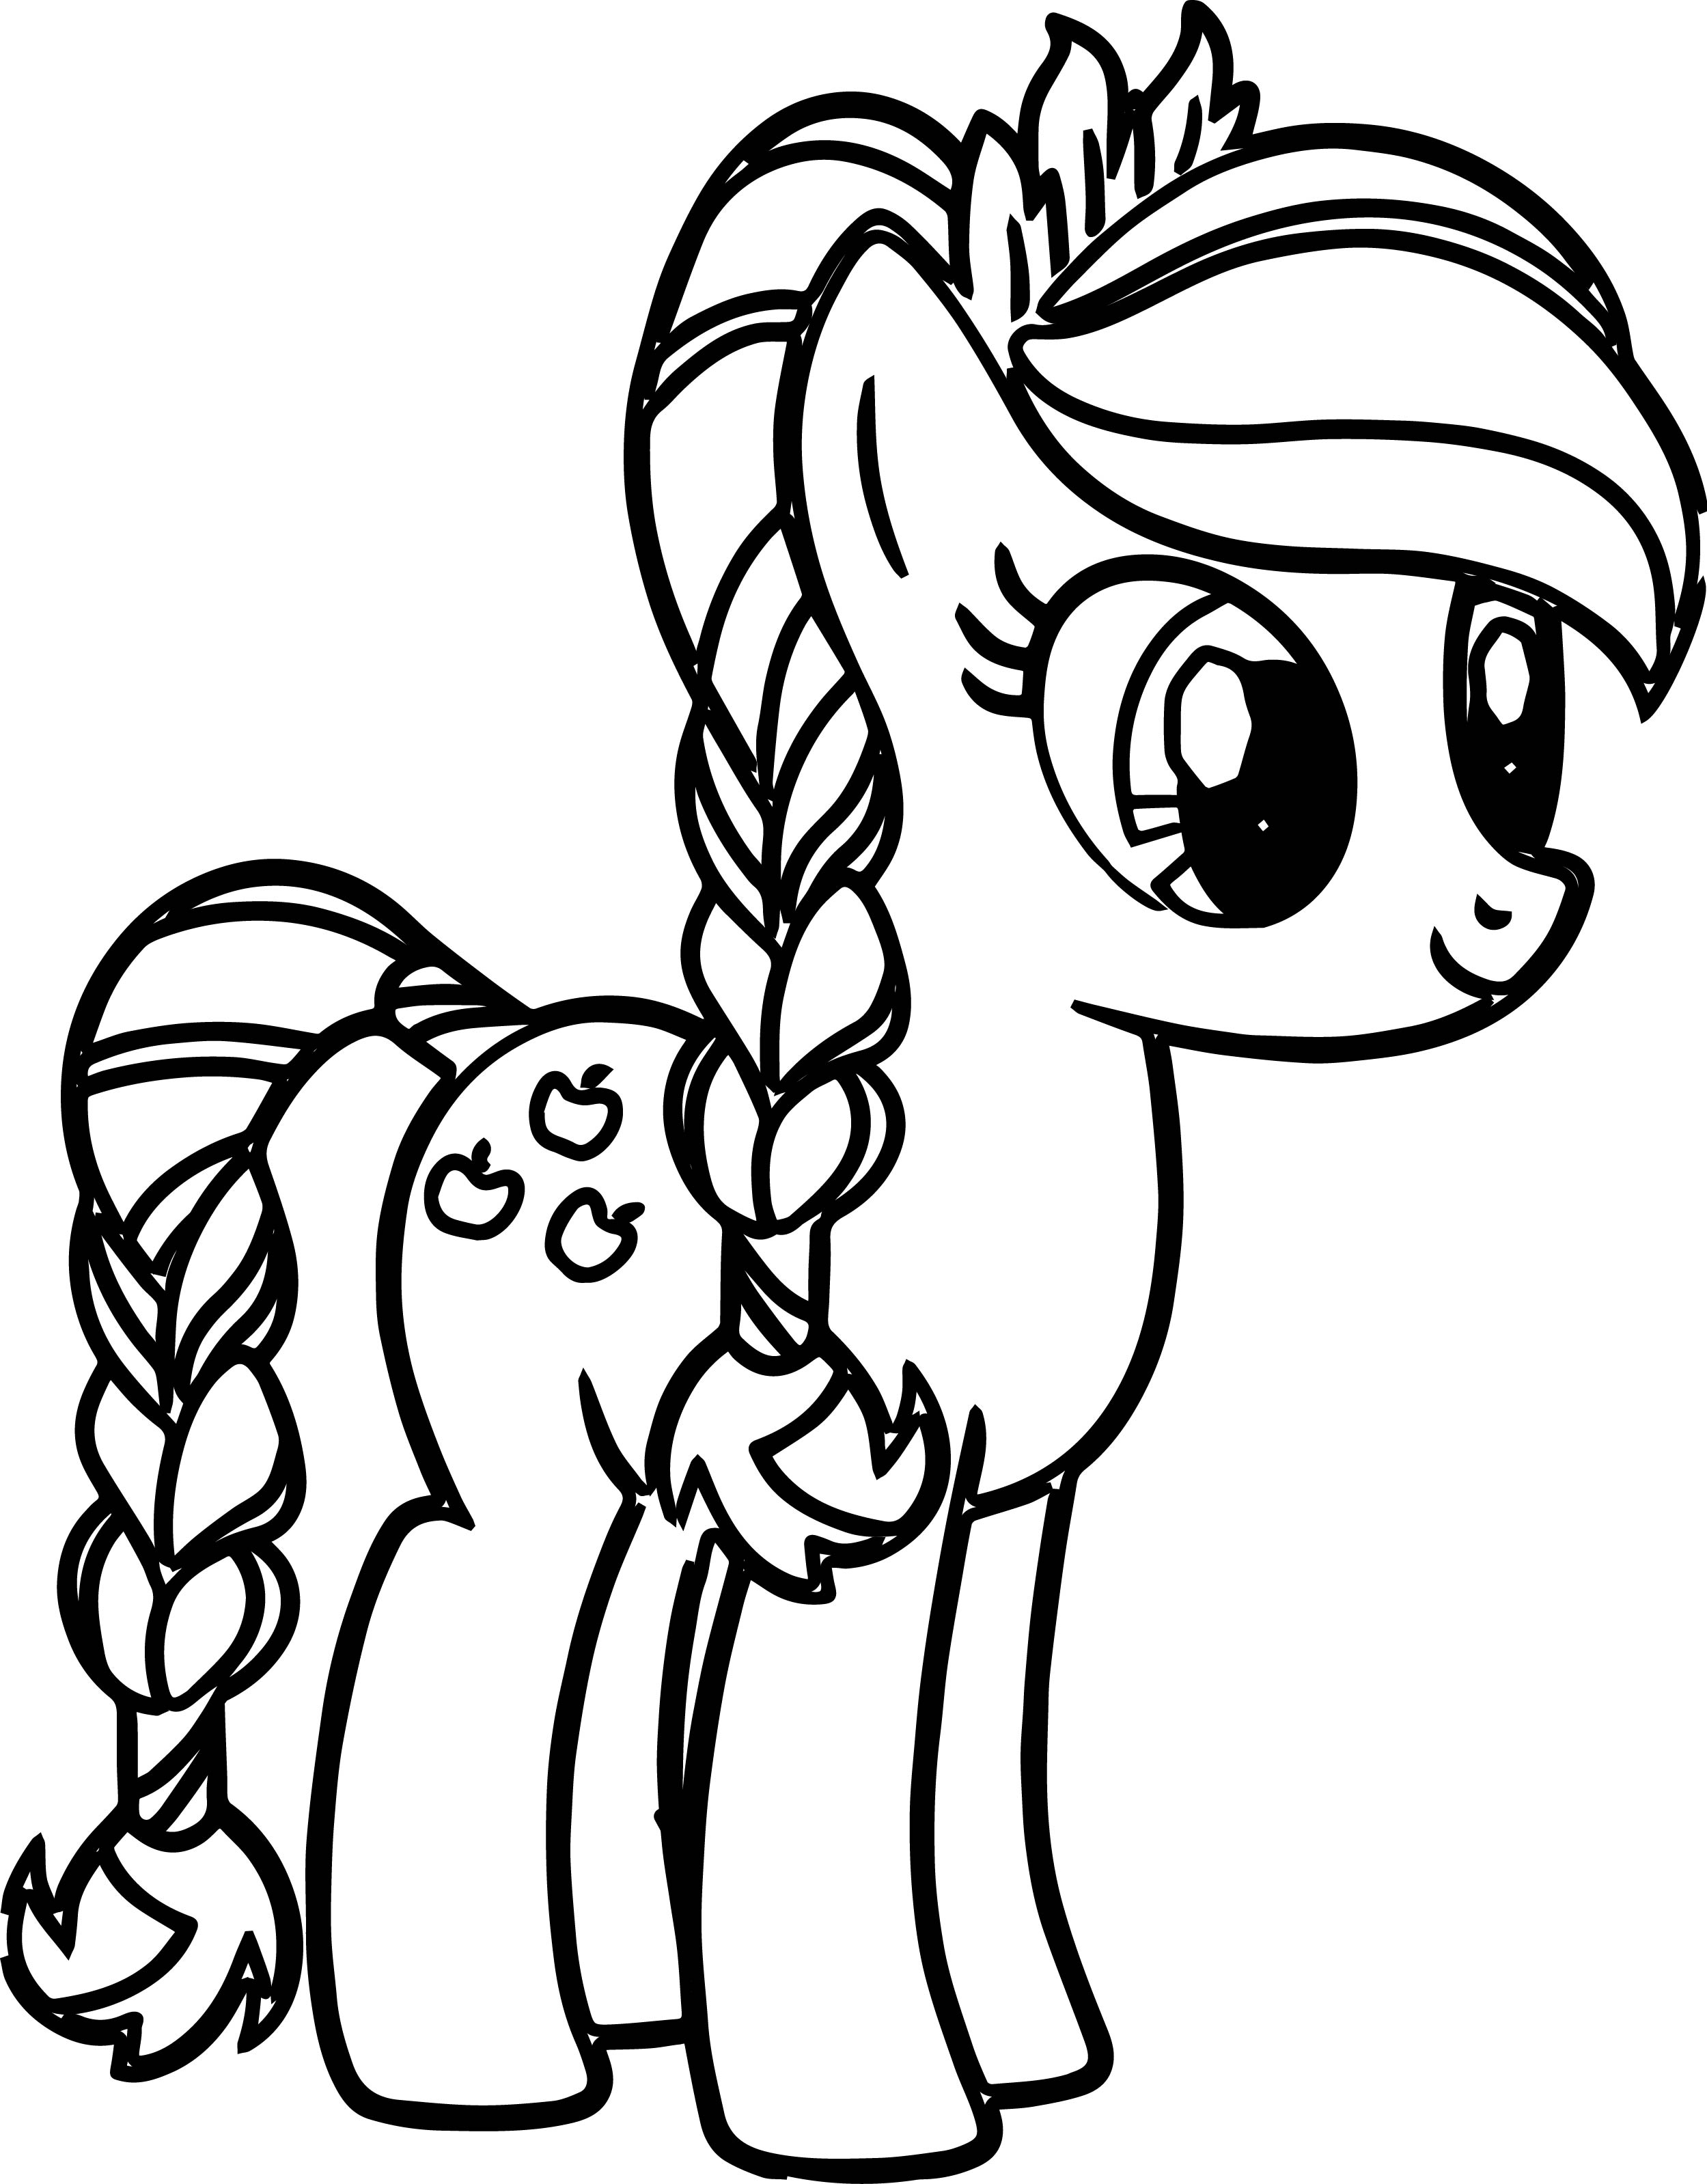 my little pony coloring pages printable my little pony coloring pages little coloring printable pony pages my